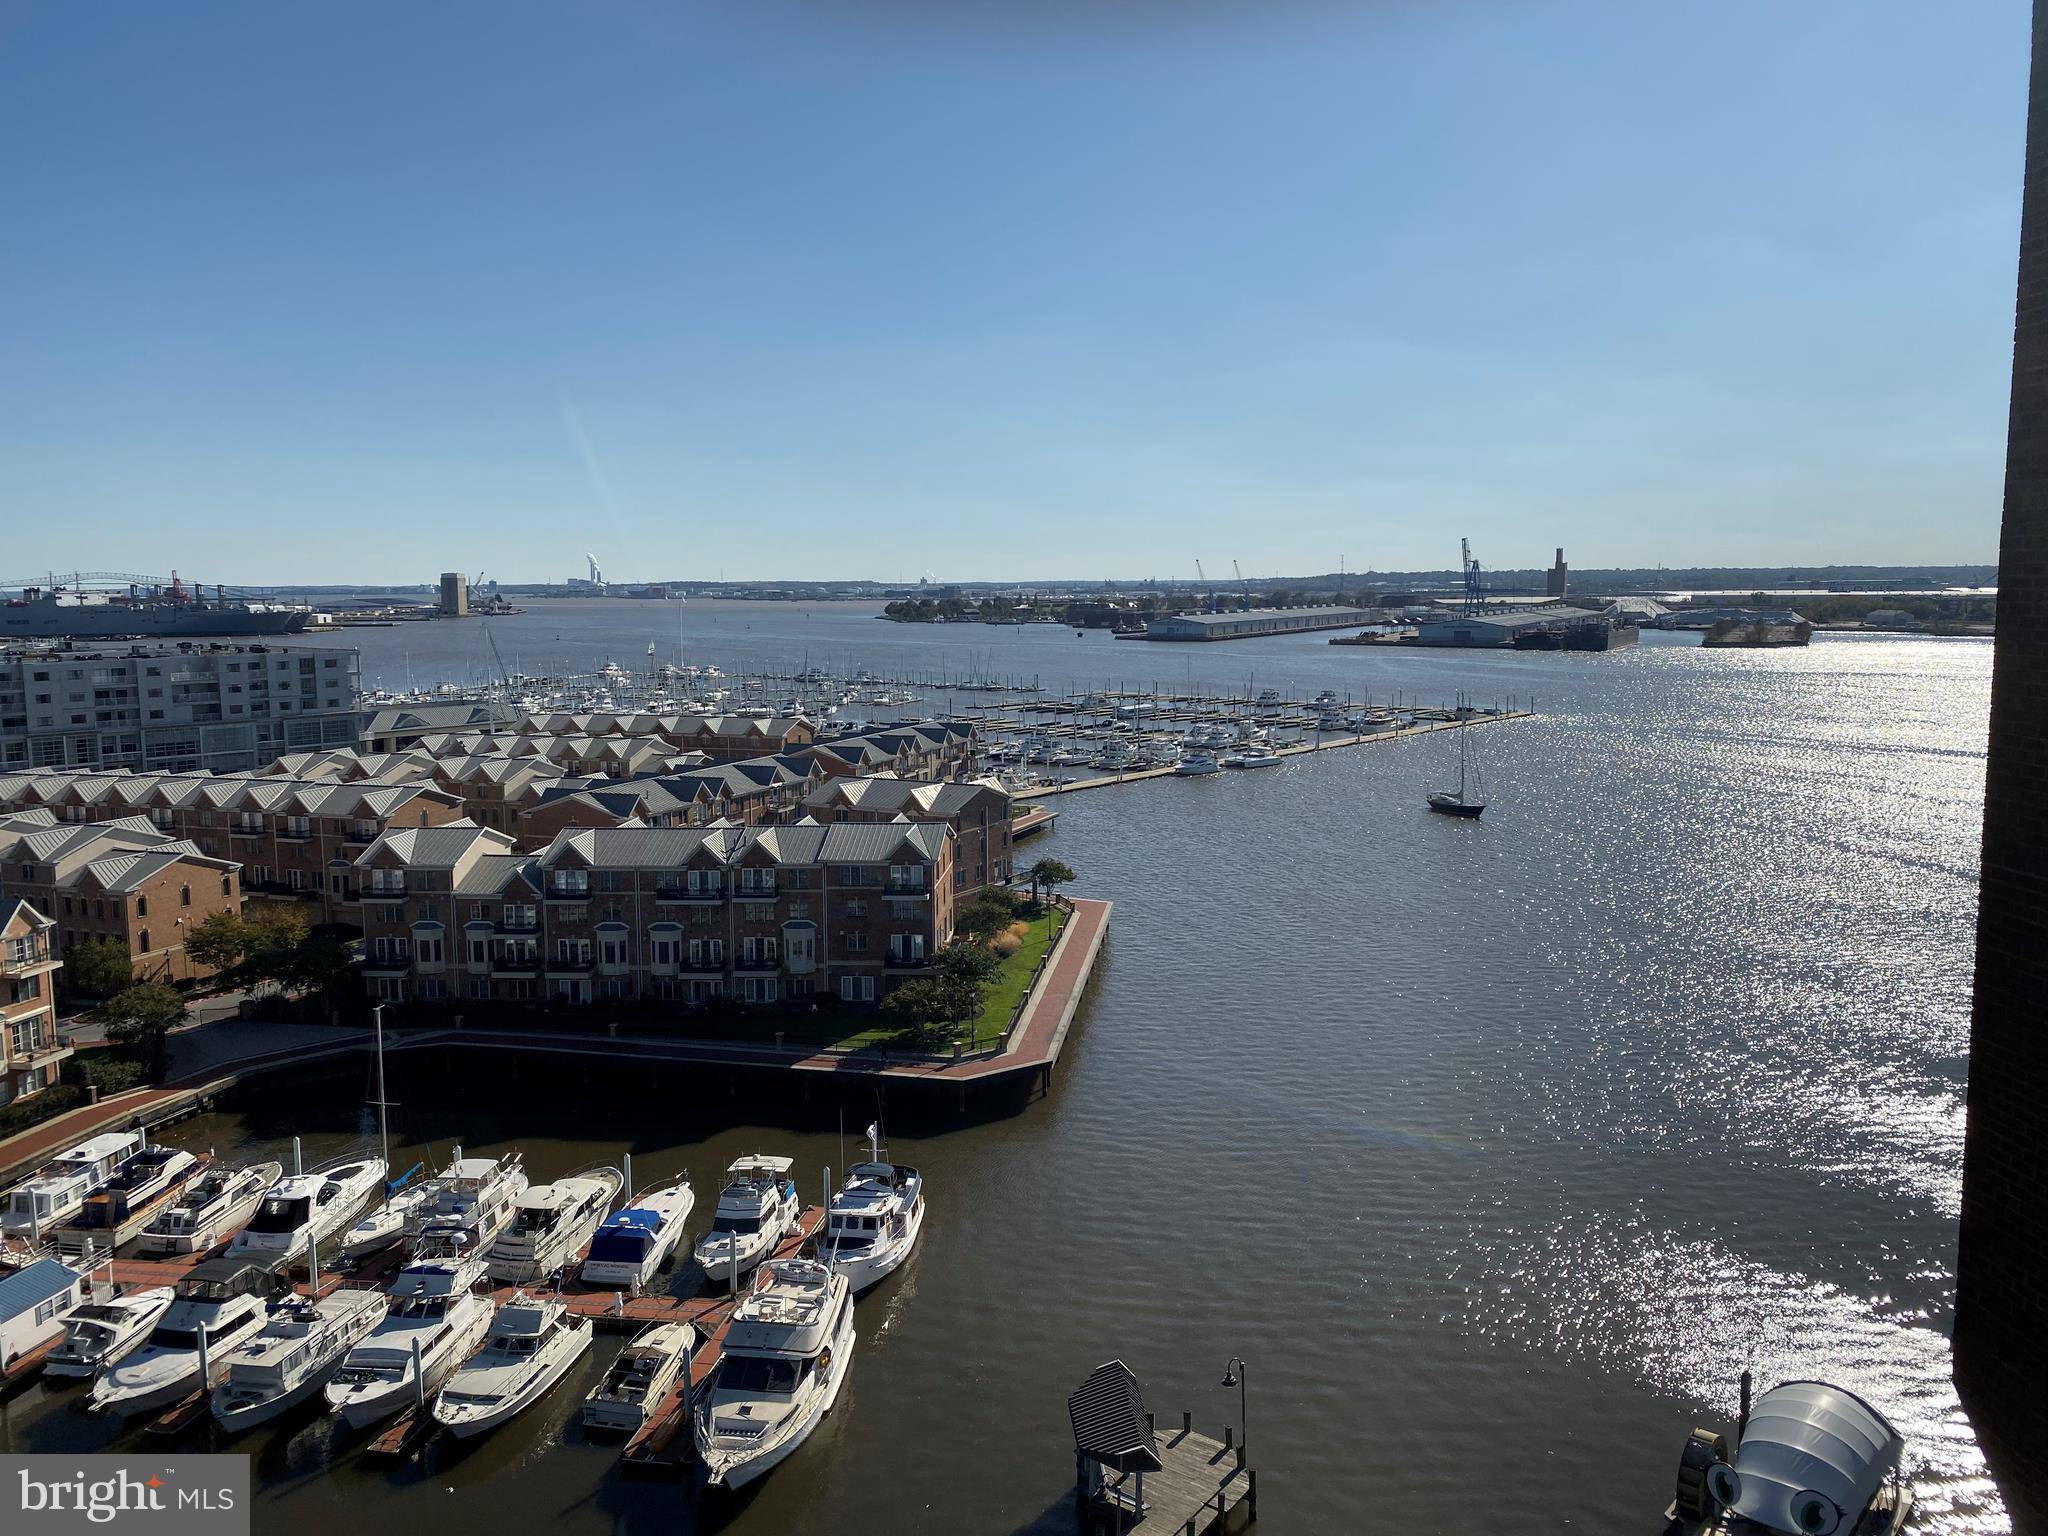 $40,000 price drop.   Great opportunity to get this 1 bedroom condo located on the 12th floor of the Anchorage Towers.  Views of the outer harbor and Ft. McHenry, Key Bridge, and Marinas.   Come and add your own touches to make this yours.   You will be amazed at the views.  24 hr front desk security.  Parking included in price.  Close to all shops and restaurants.  And one of the best benefits of this building is guest parking.  No more having your guest drive around the city looking for a place to park.   Low condo fees also.